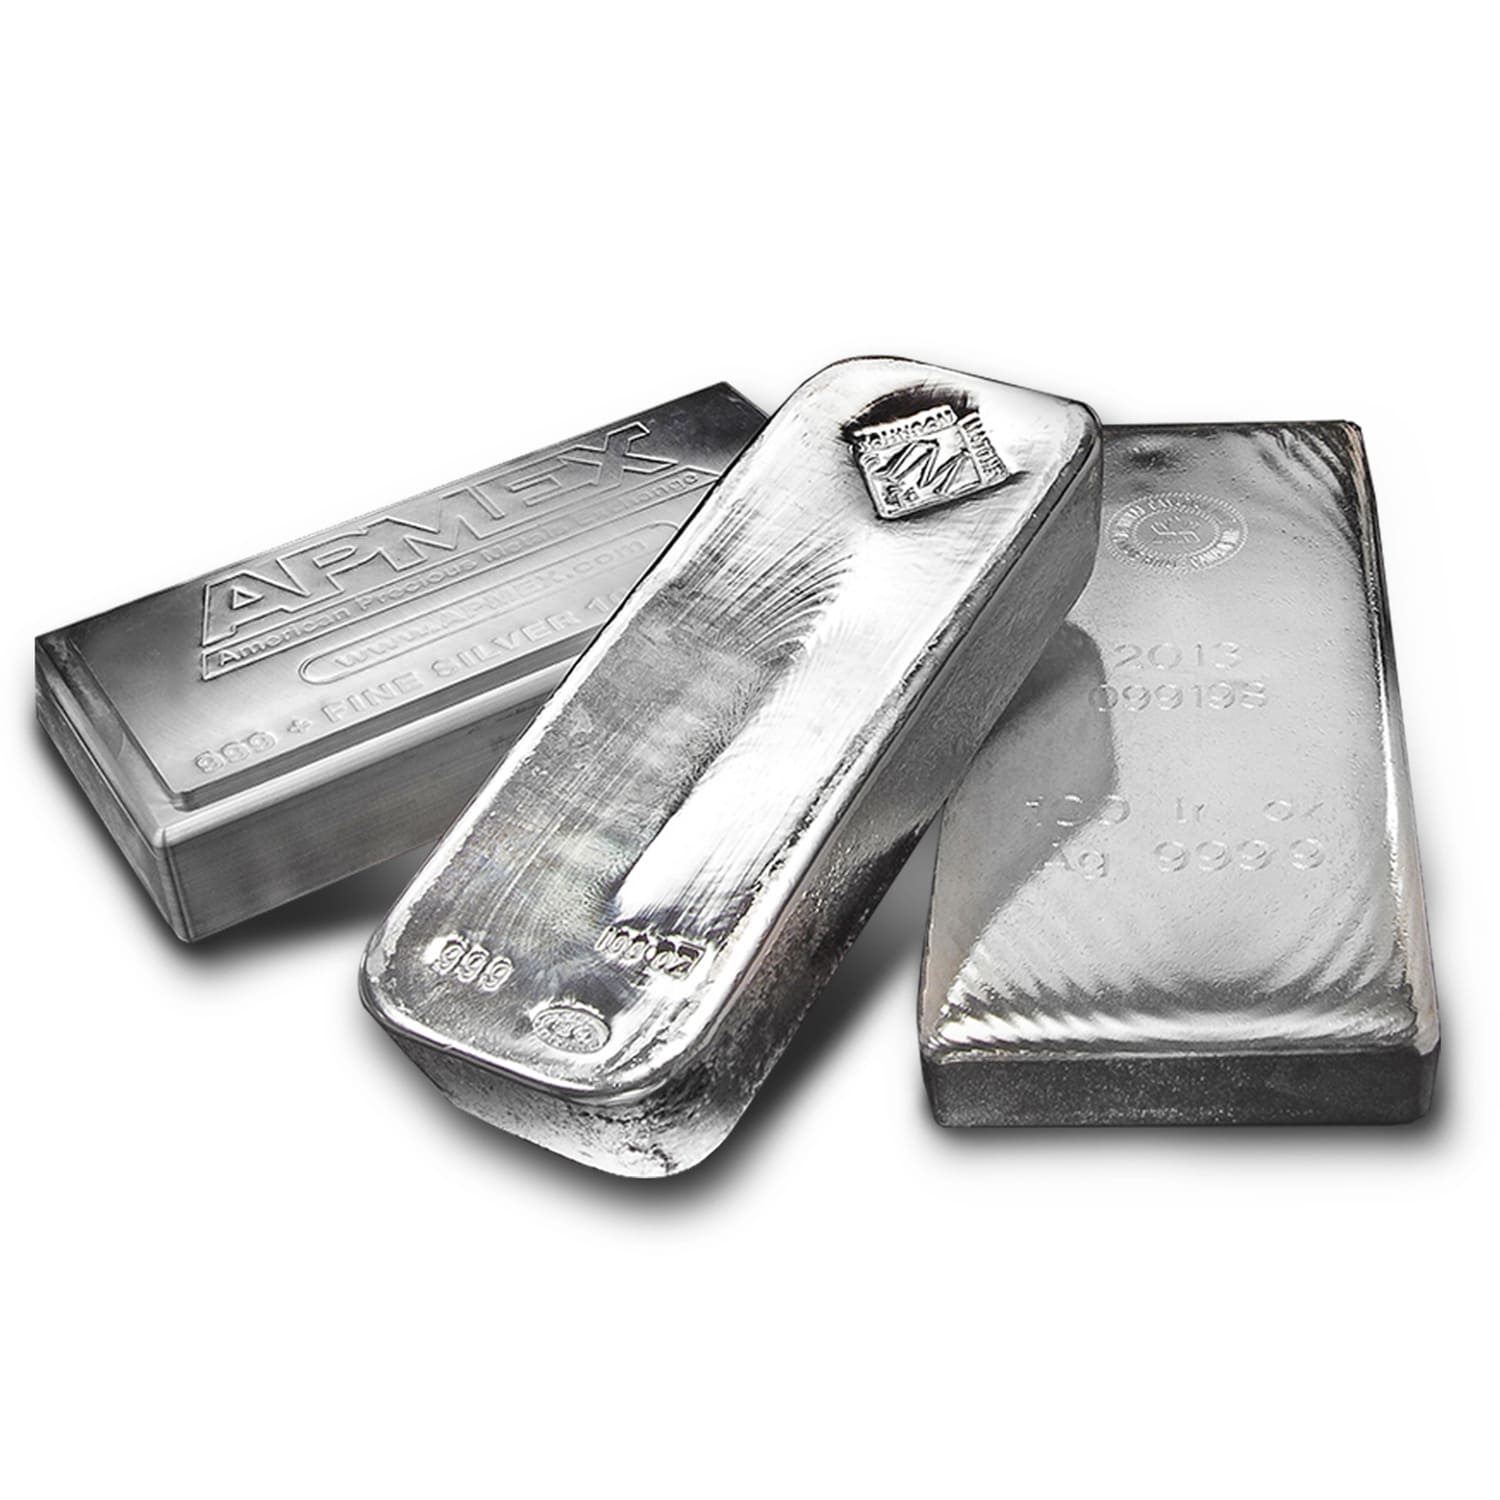 97.93 oz Silver Bar - Secondary Market